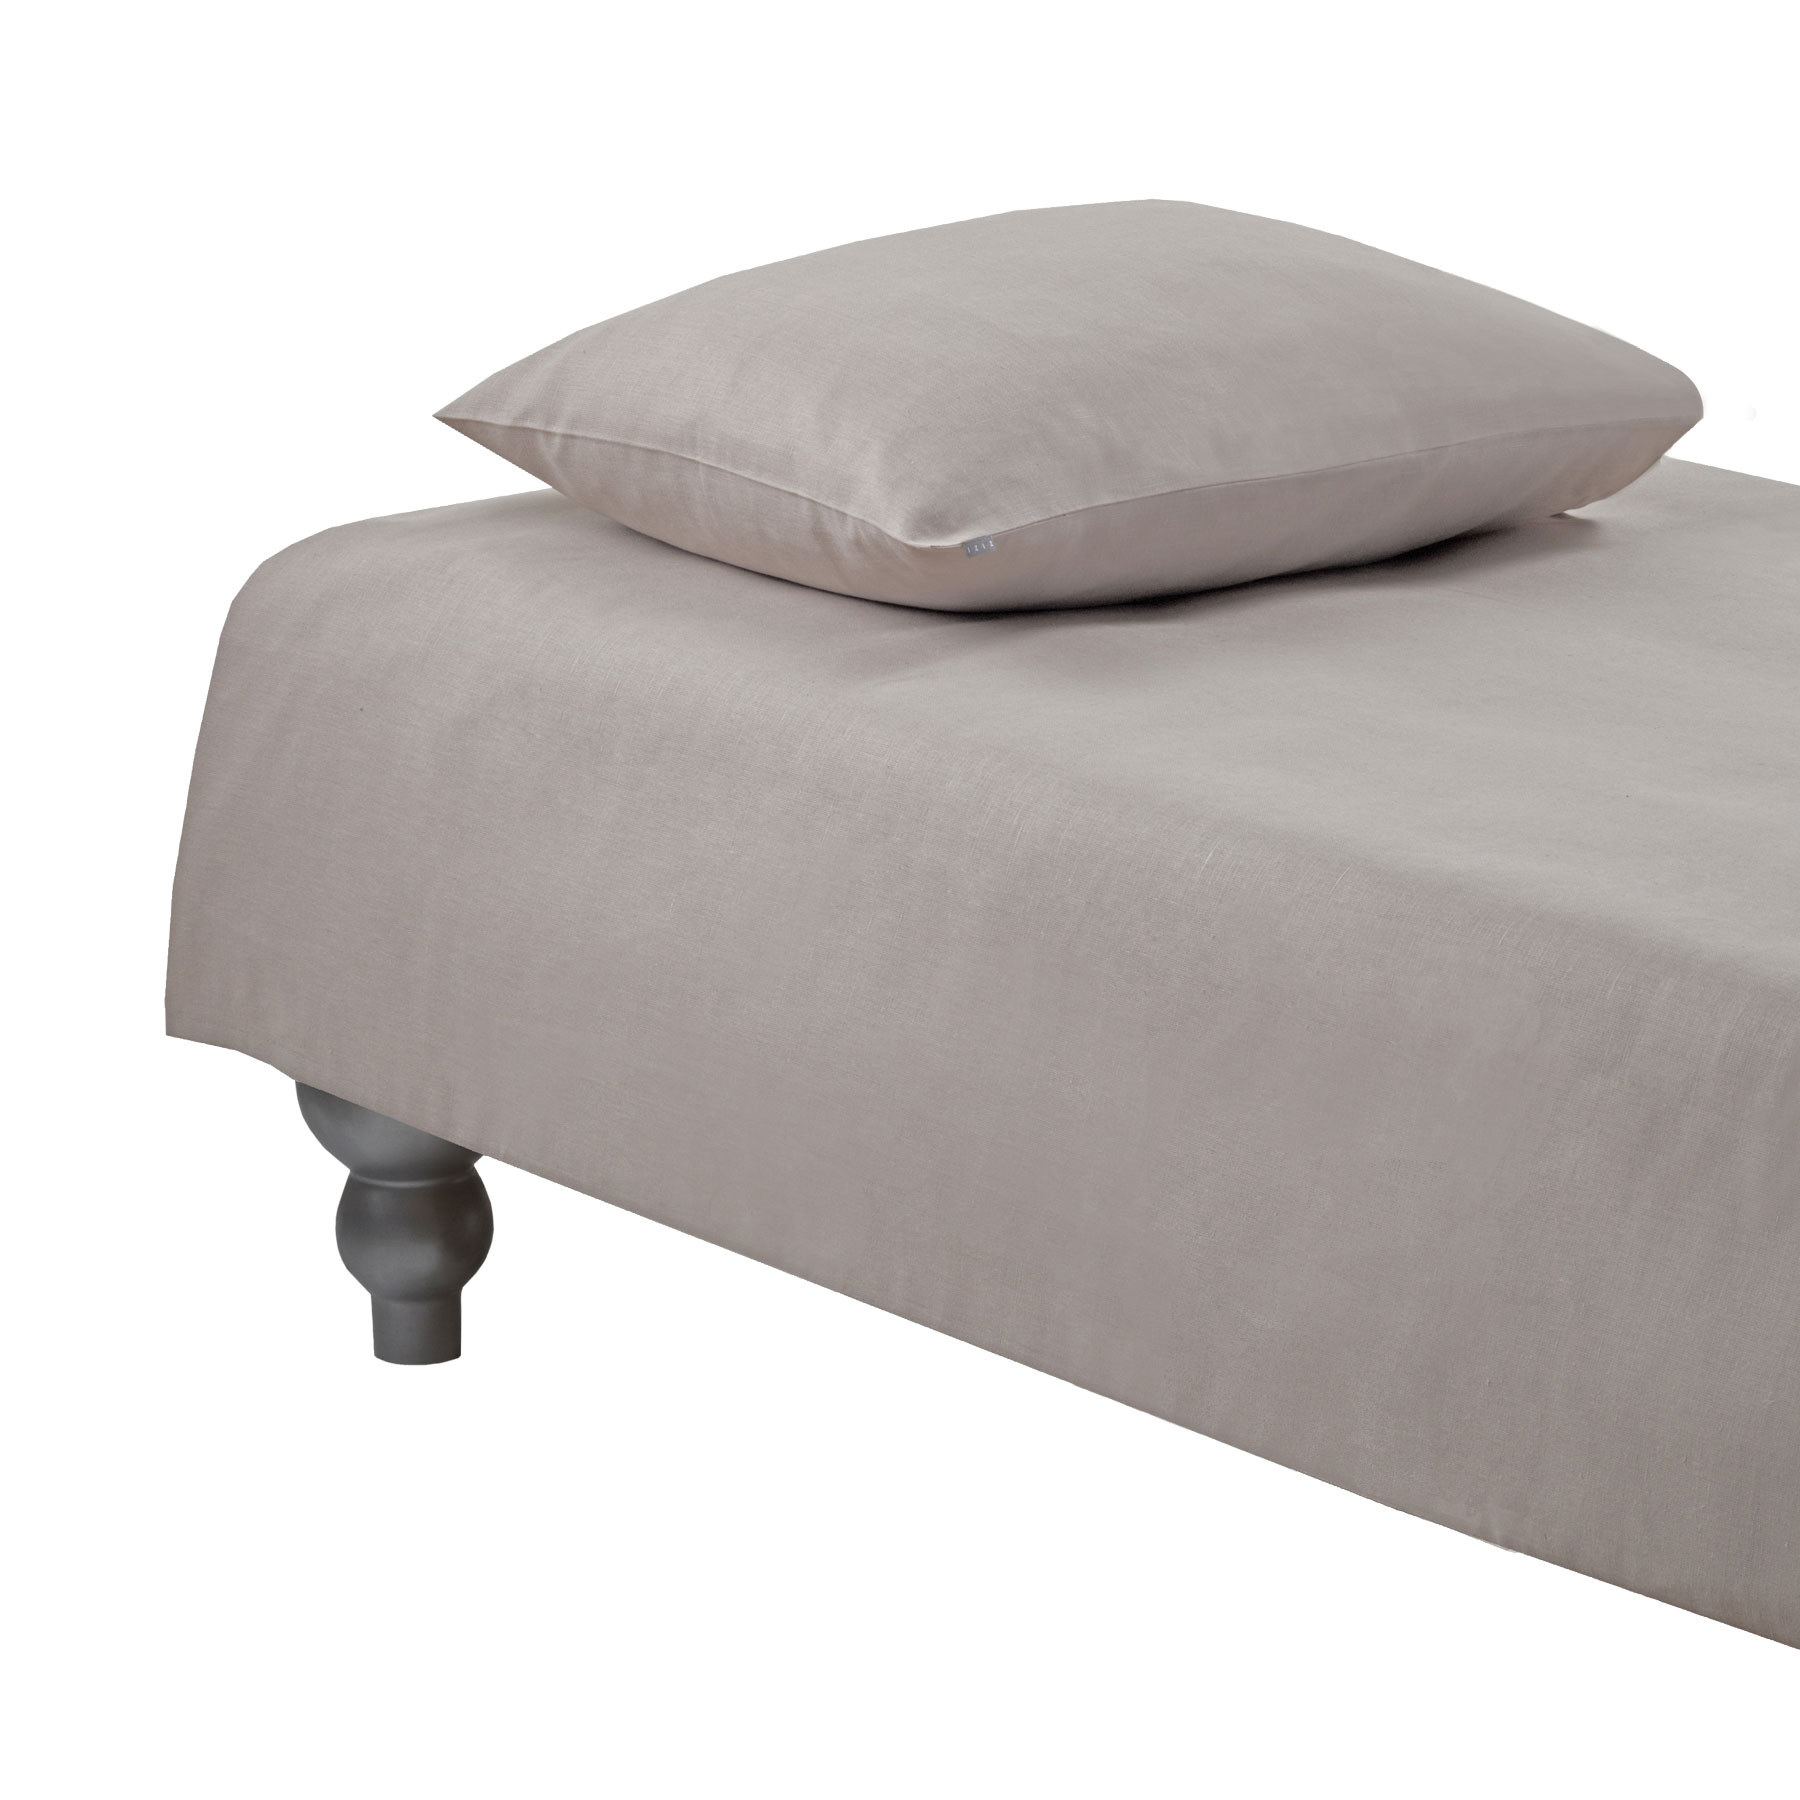 DUVET COVER PLAIN <br />sand